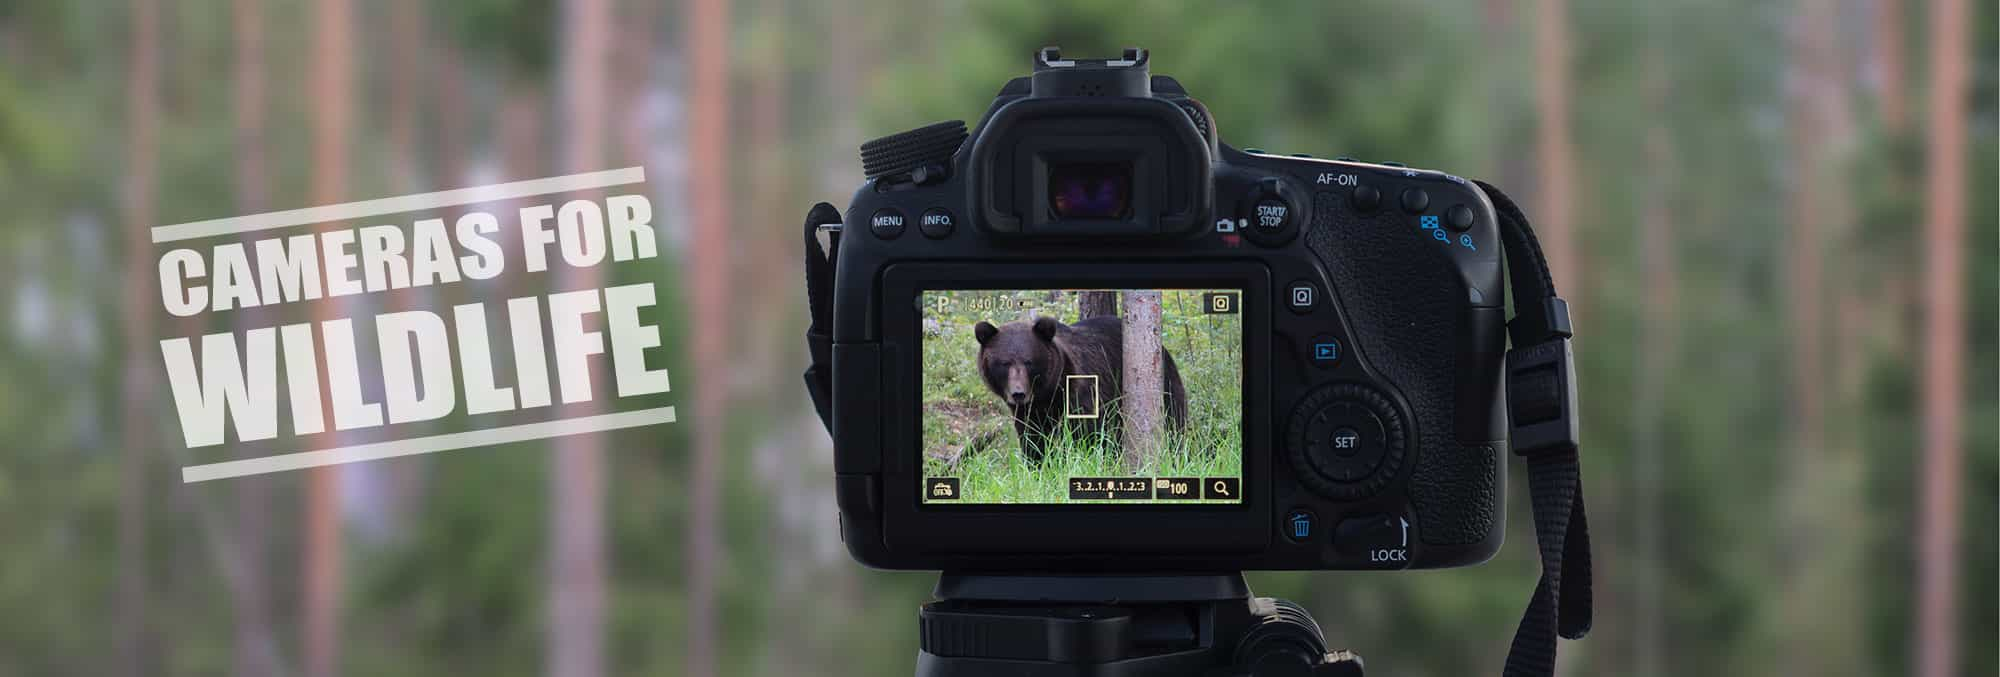 Best Camera for Wildlife Photography - Reviews and Guide